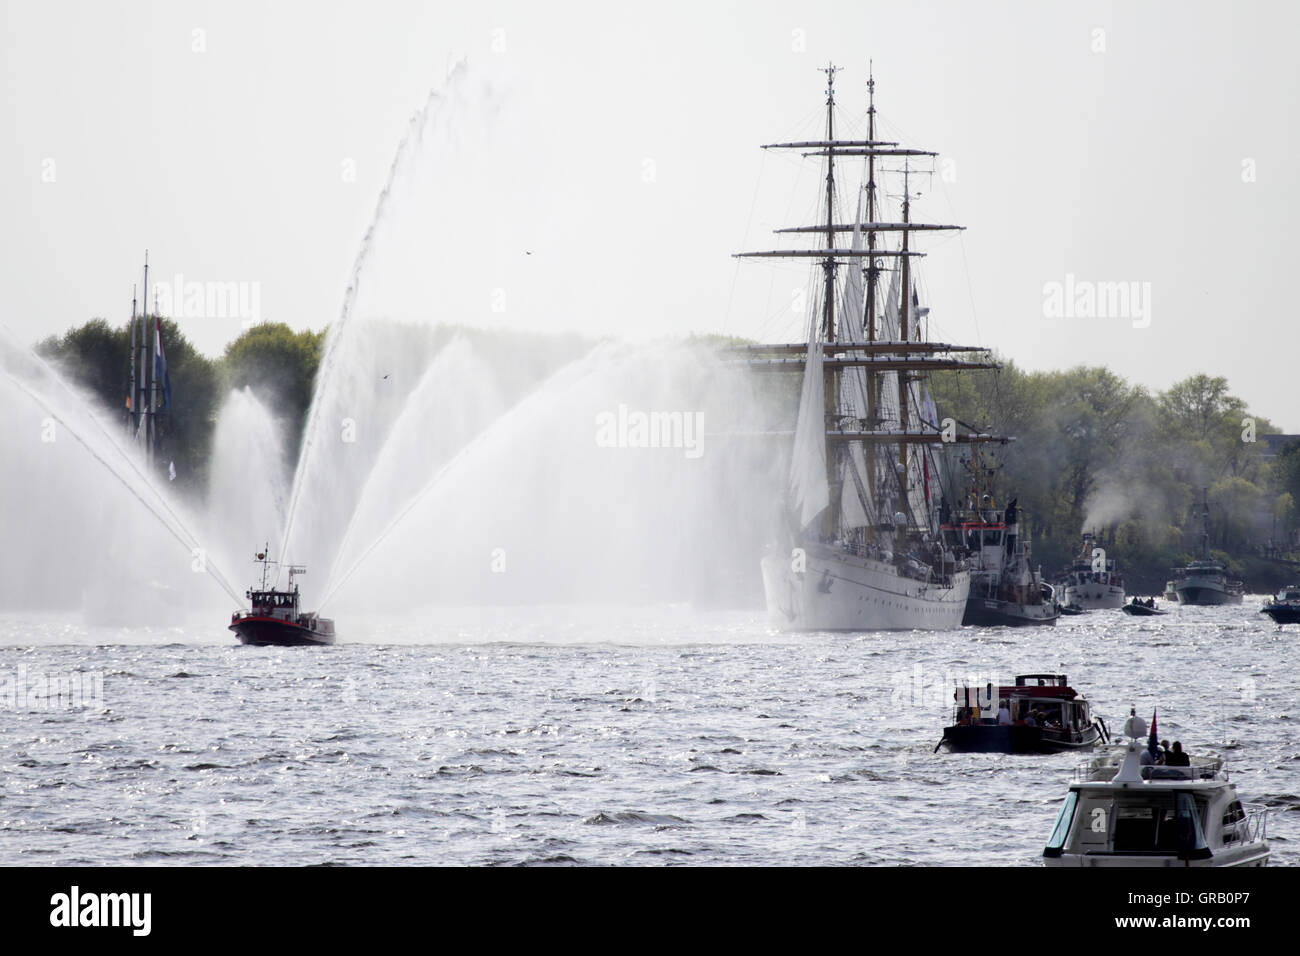 Hamburg Harbours Birthday, The Gorch Fock At The Ships Parade - Stock Image